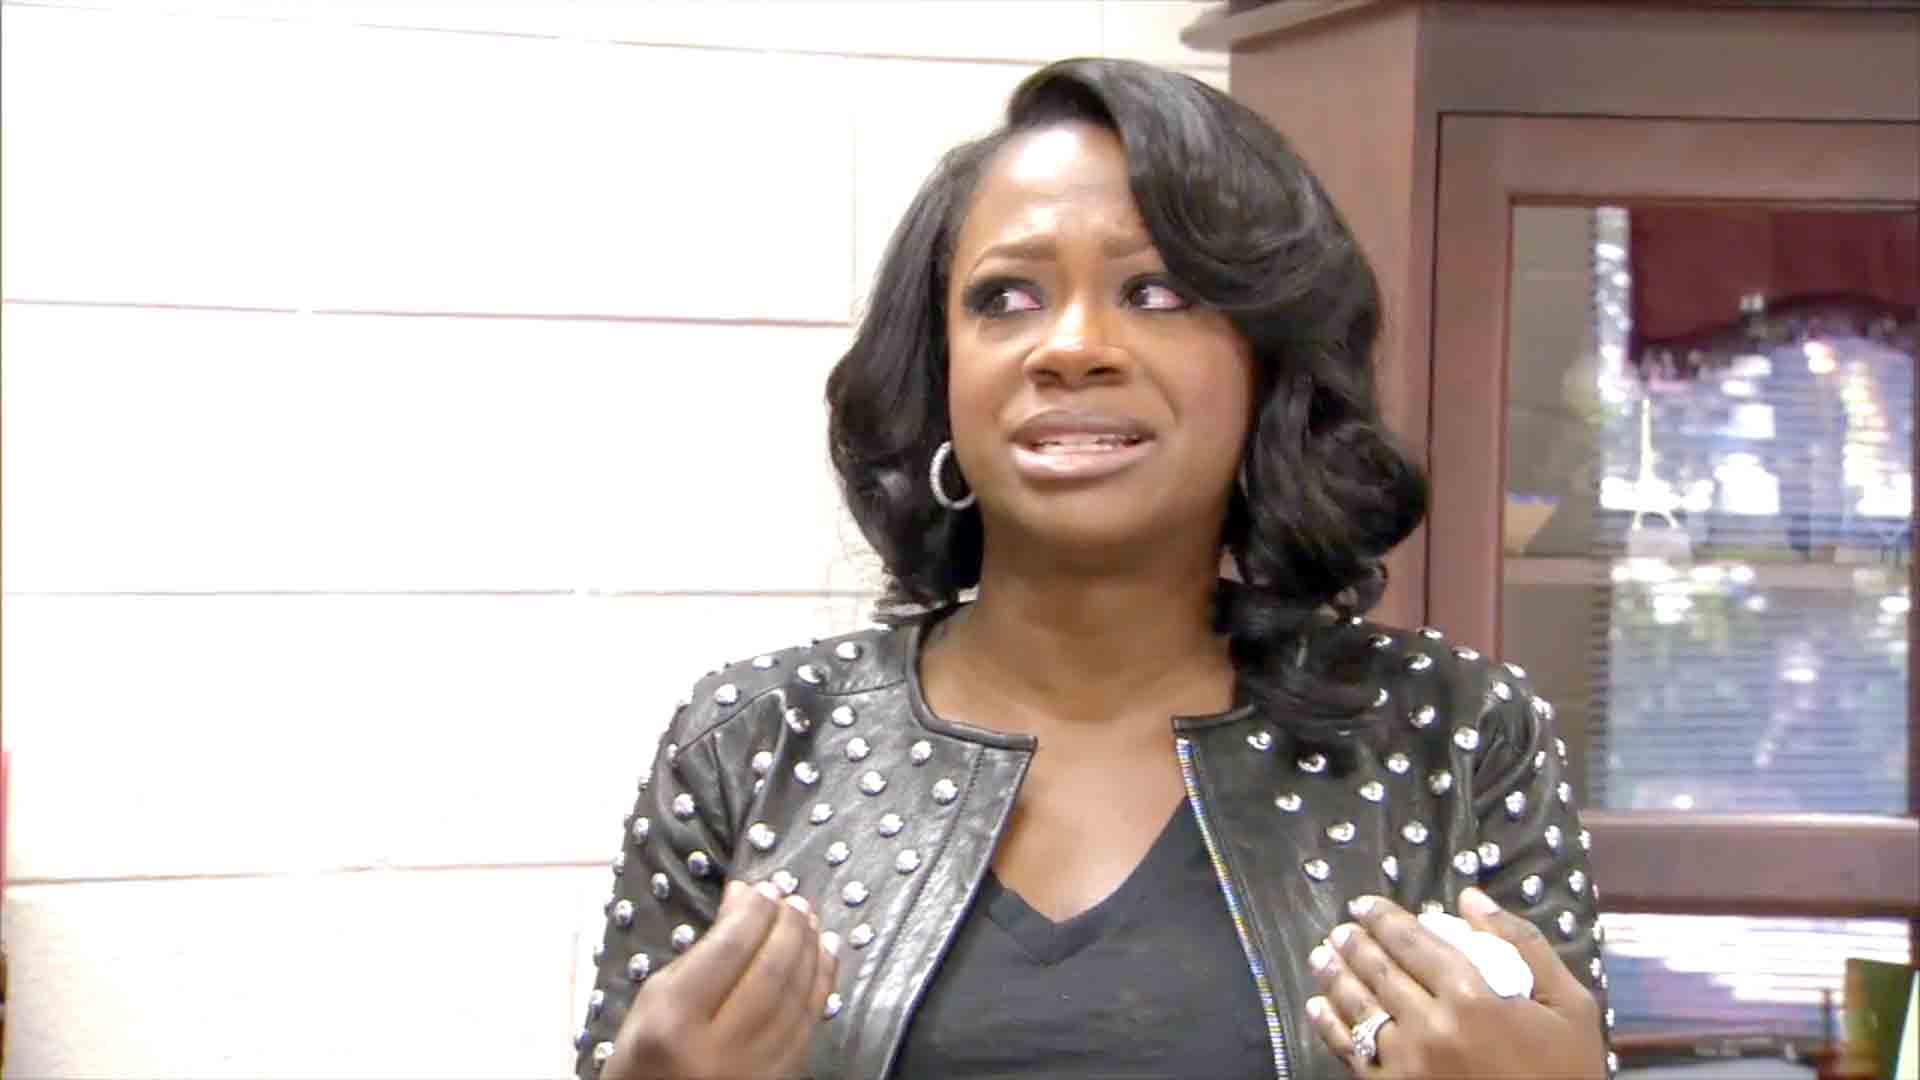 Why's Kandi Burruss Crying?